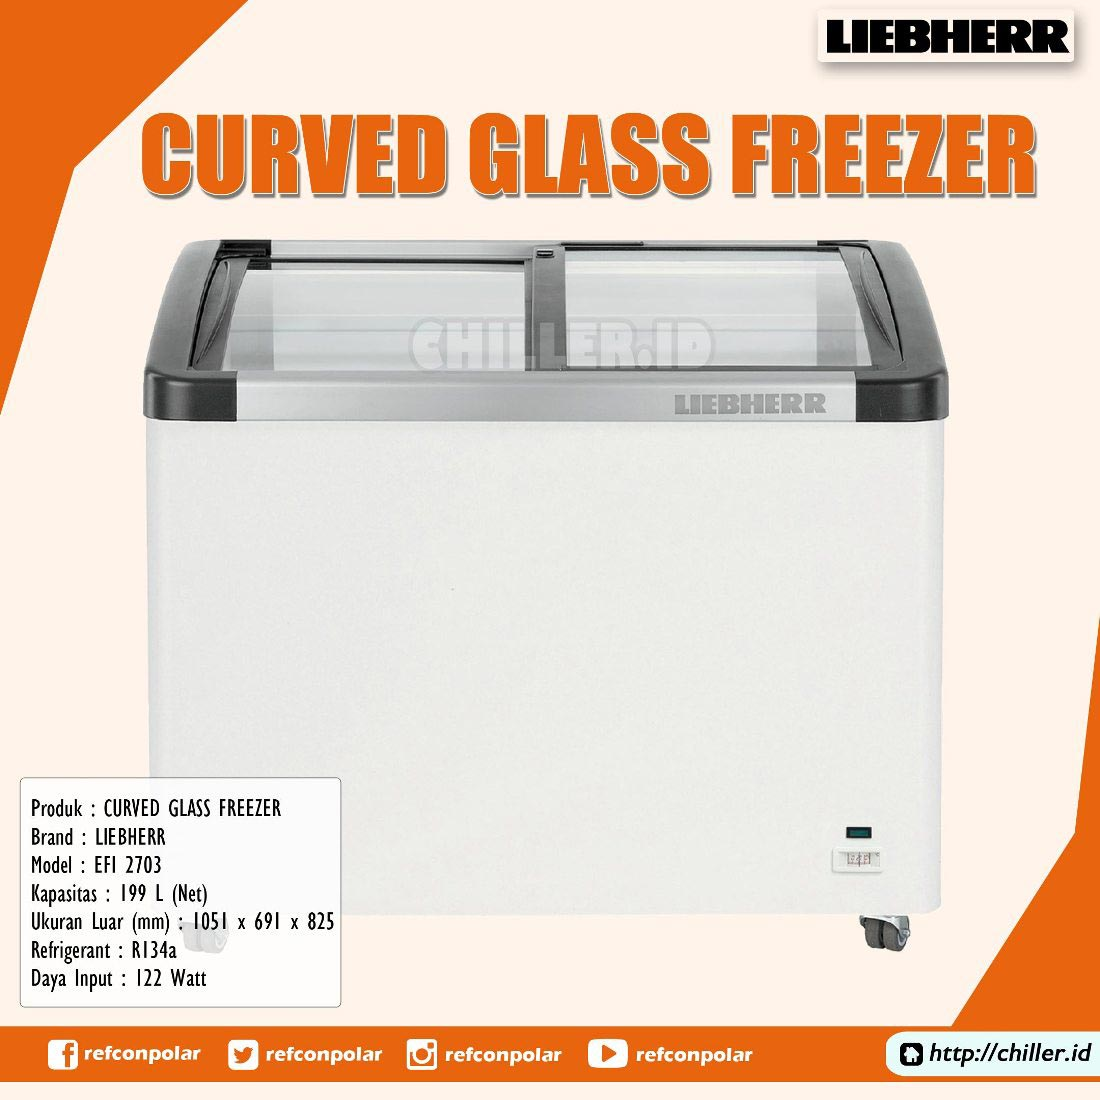 EFI 2703 Liebherr Curved Glass Freezer